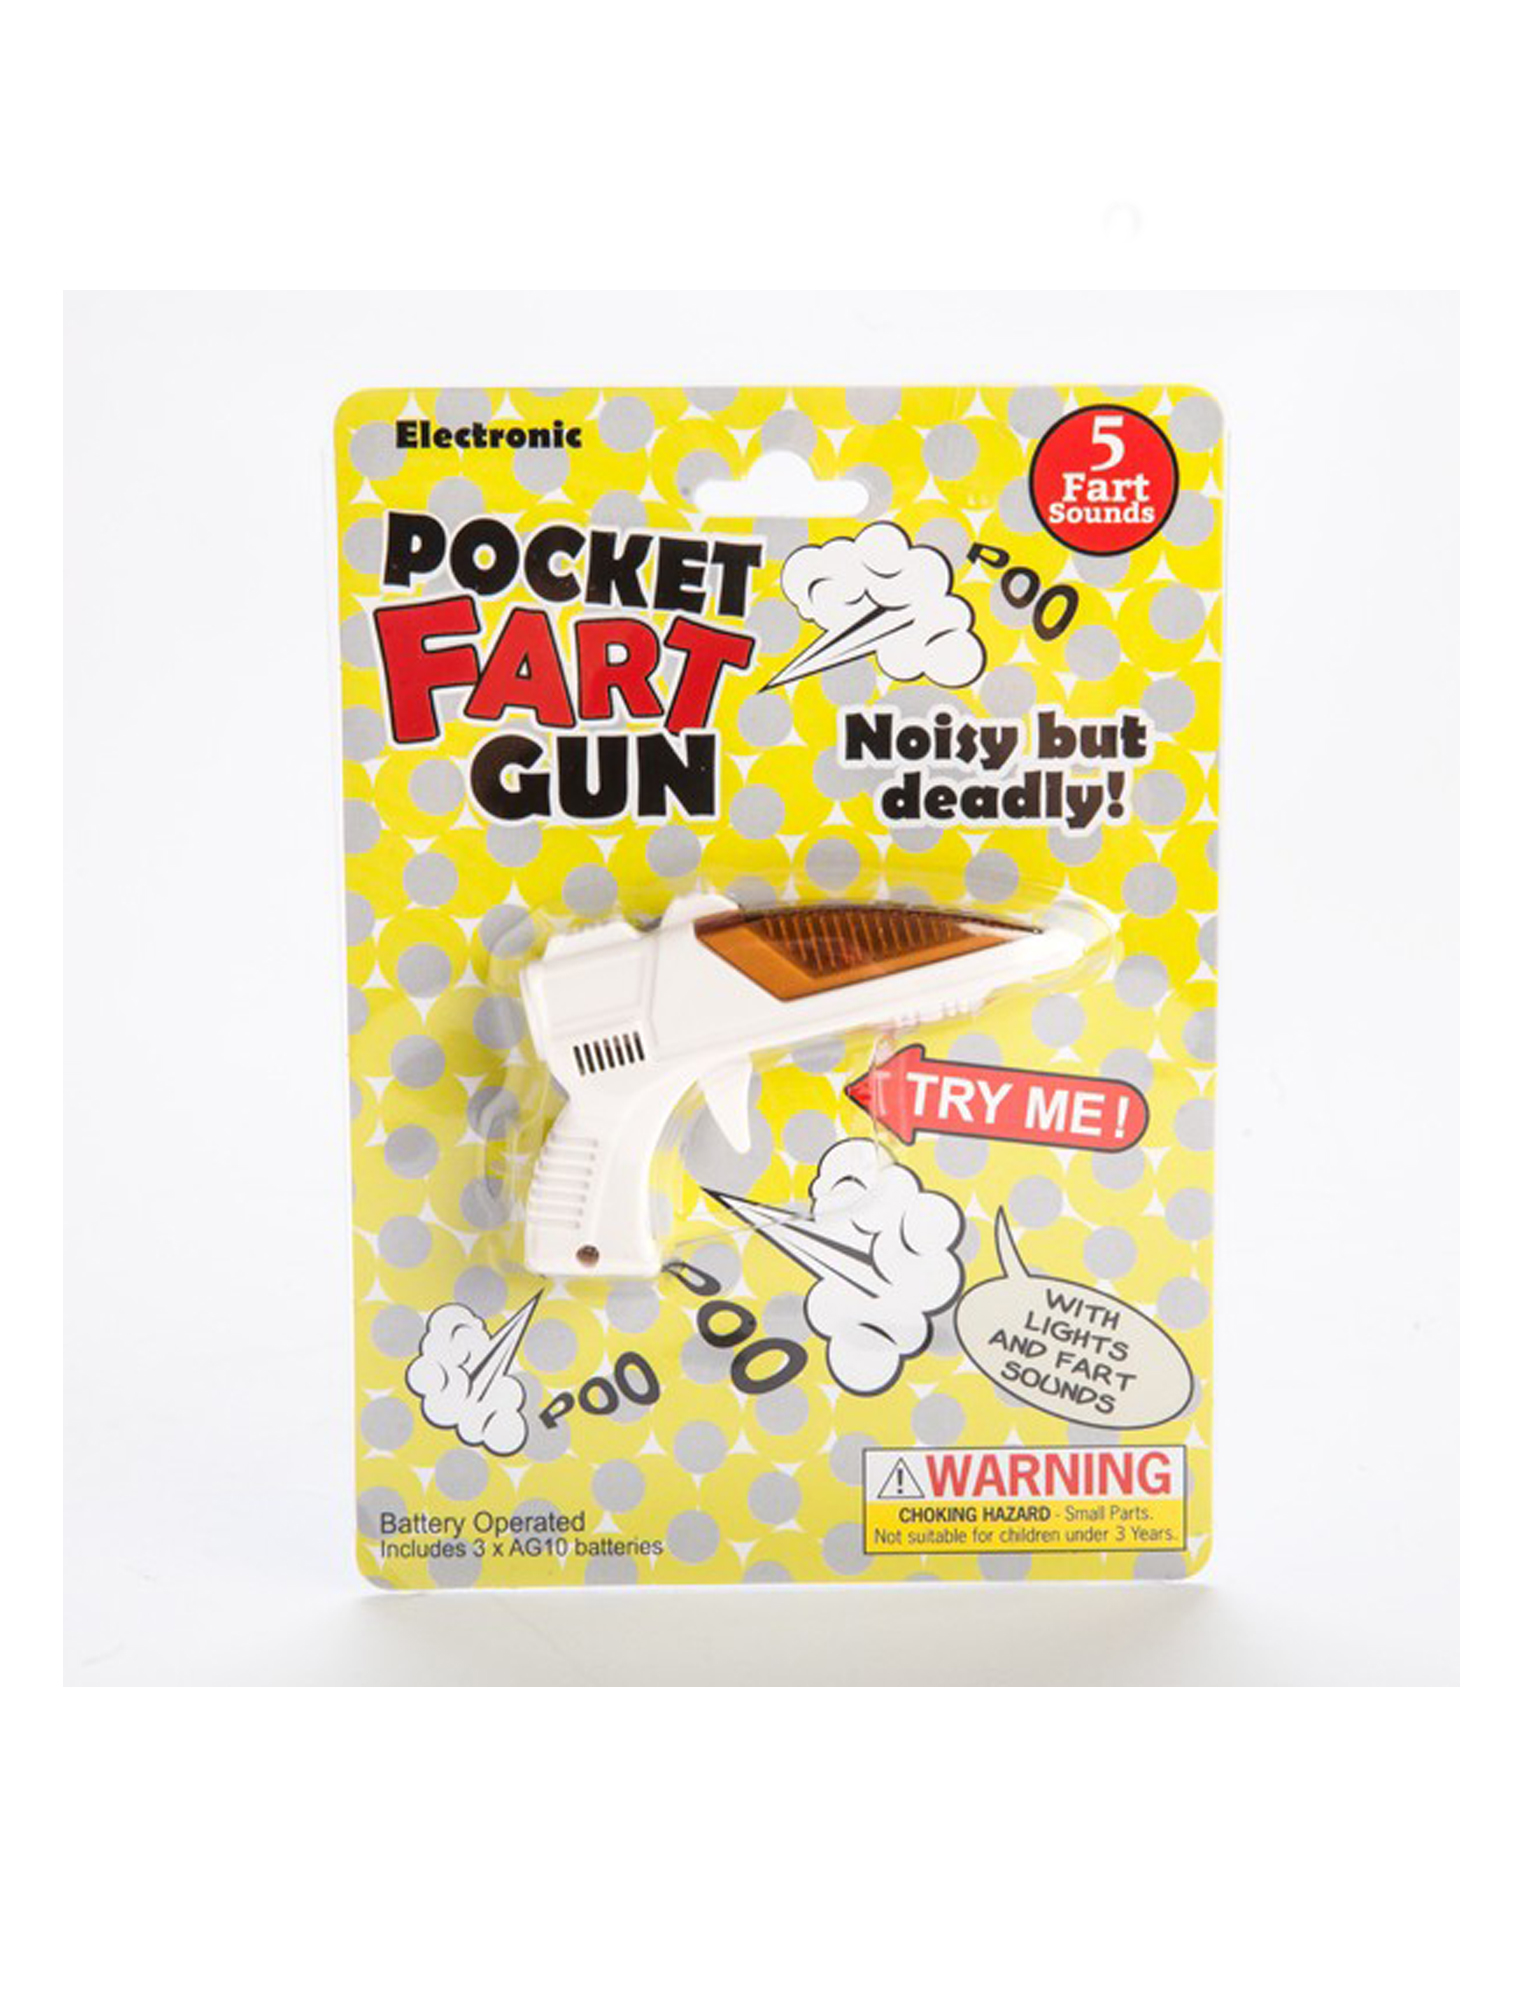 Pocket Fart Gun